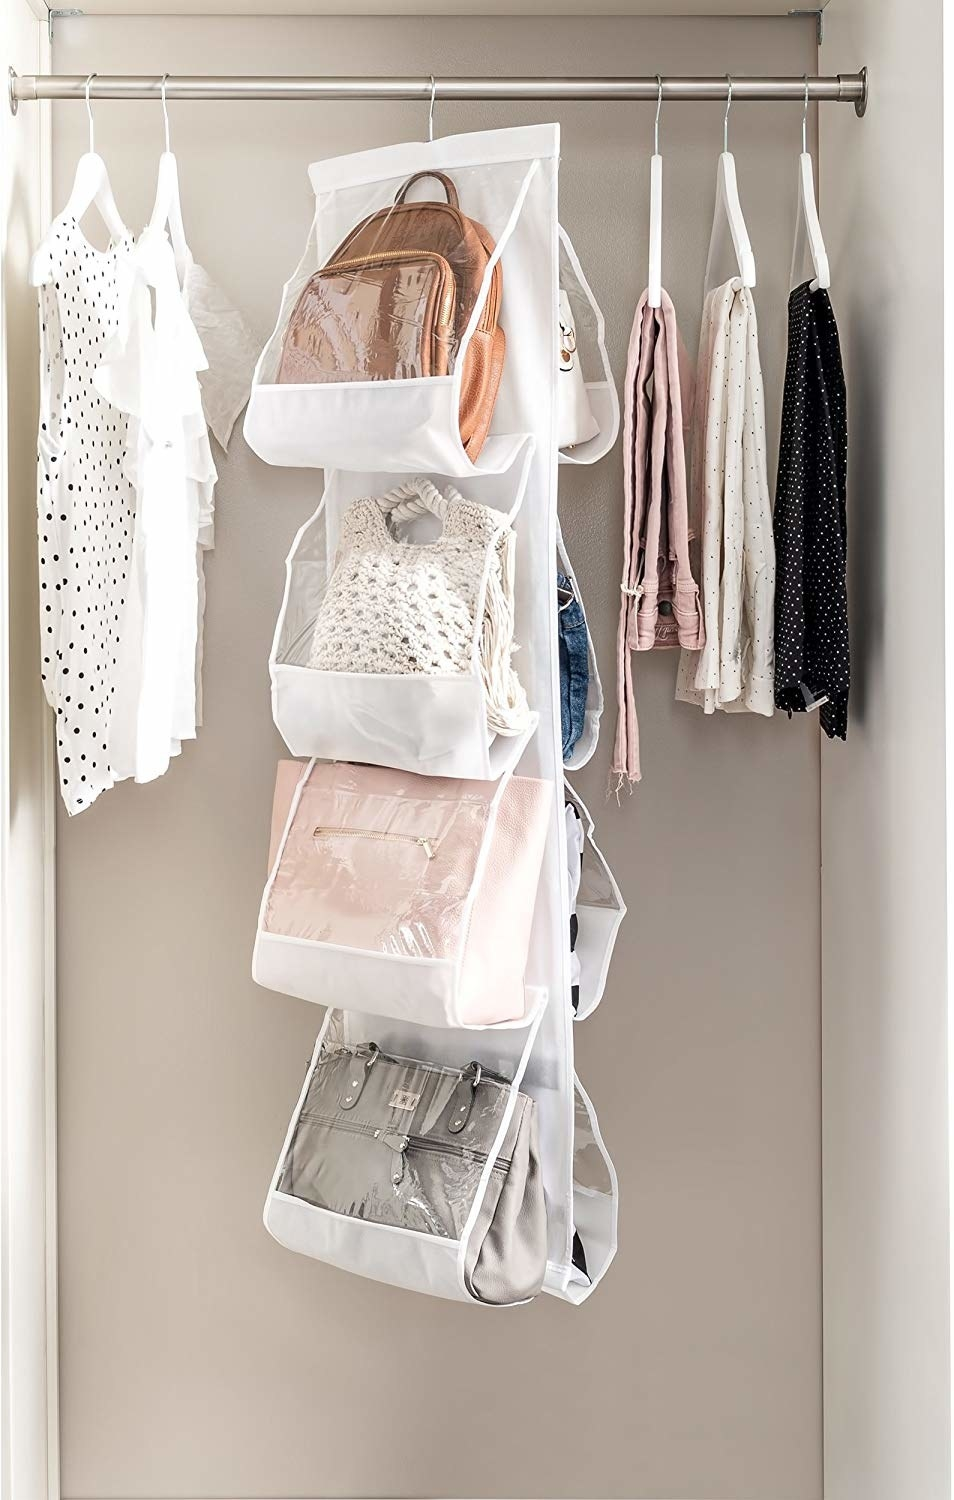 Eight purses in the organizer